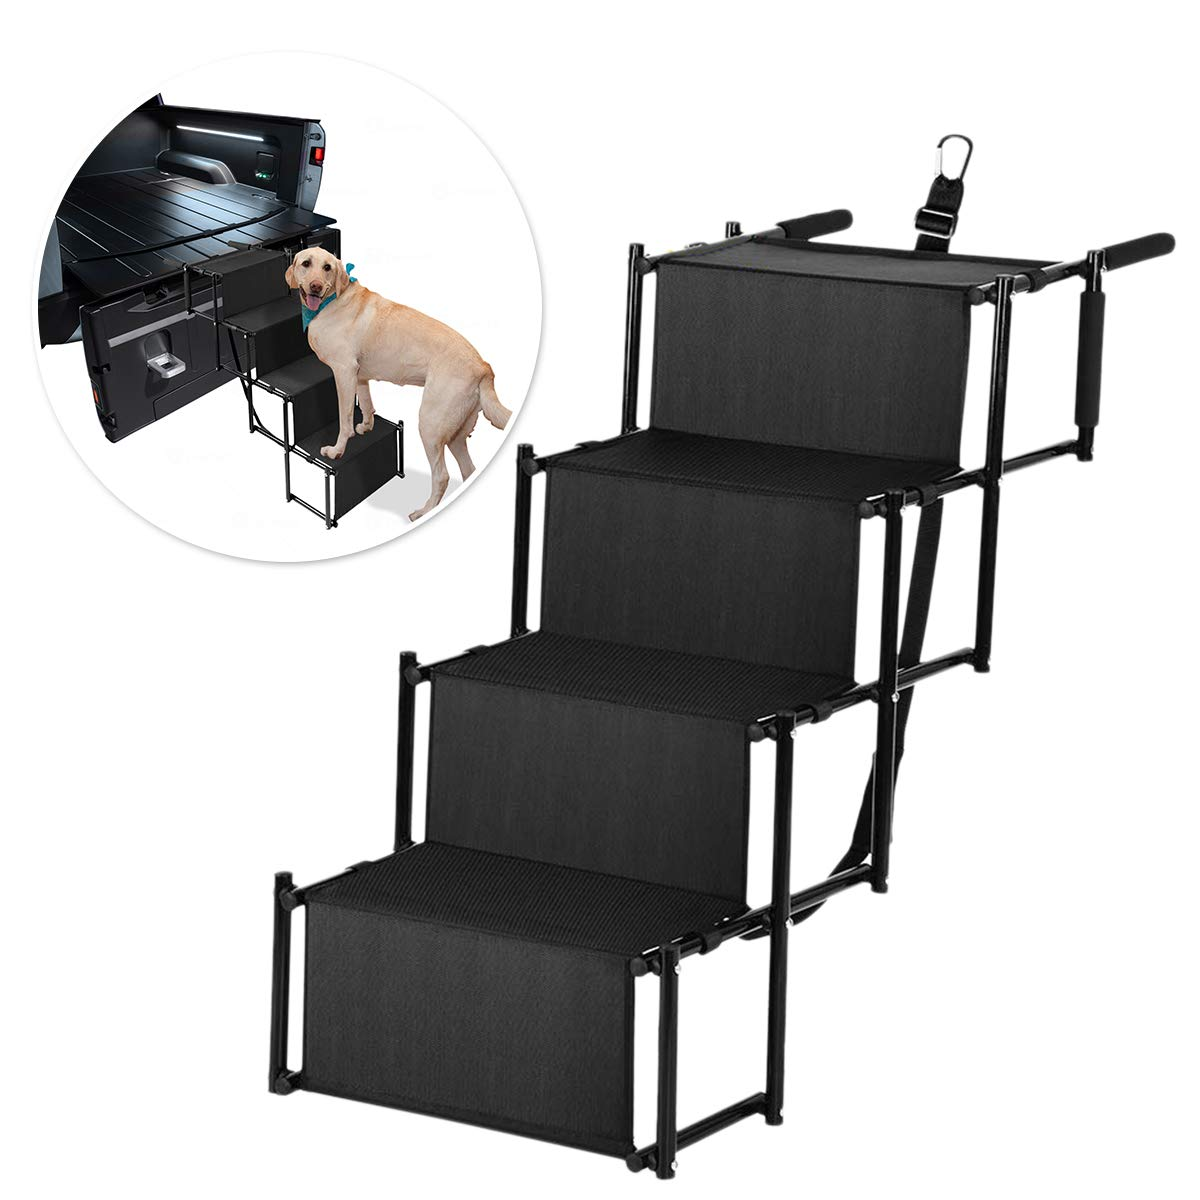 Zone Tech Car Pet Foldable Step Stair - Premium Quality Lightweight Portable Adjustable Metal Frame Folding Ramp Stairs Perfect for Any Size of House Pets by ZONETECH